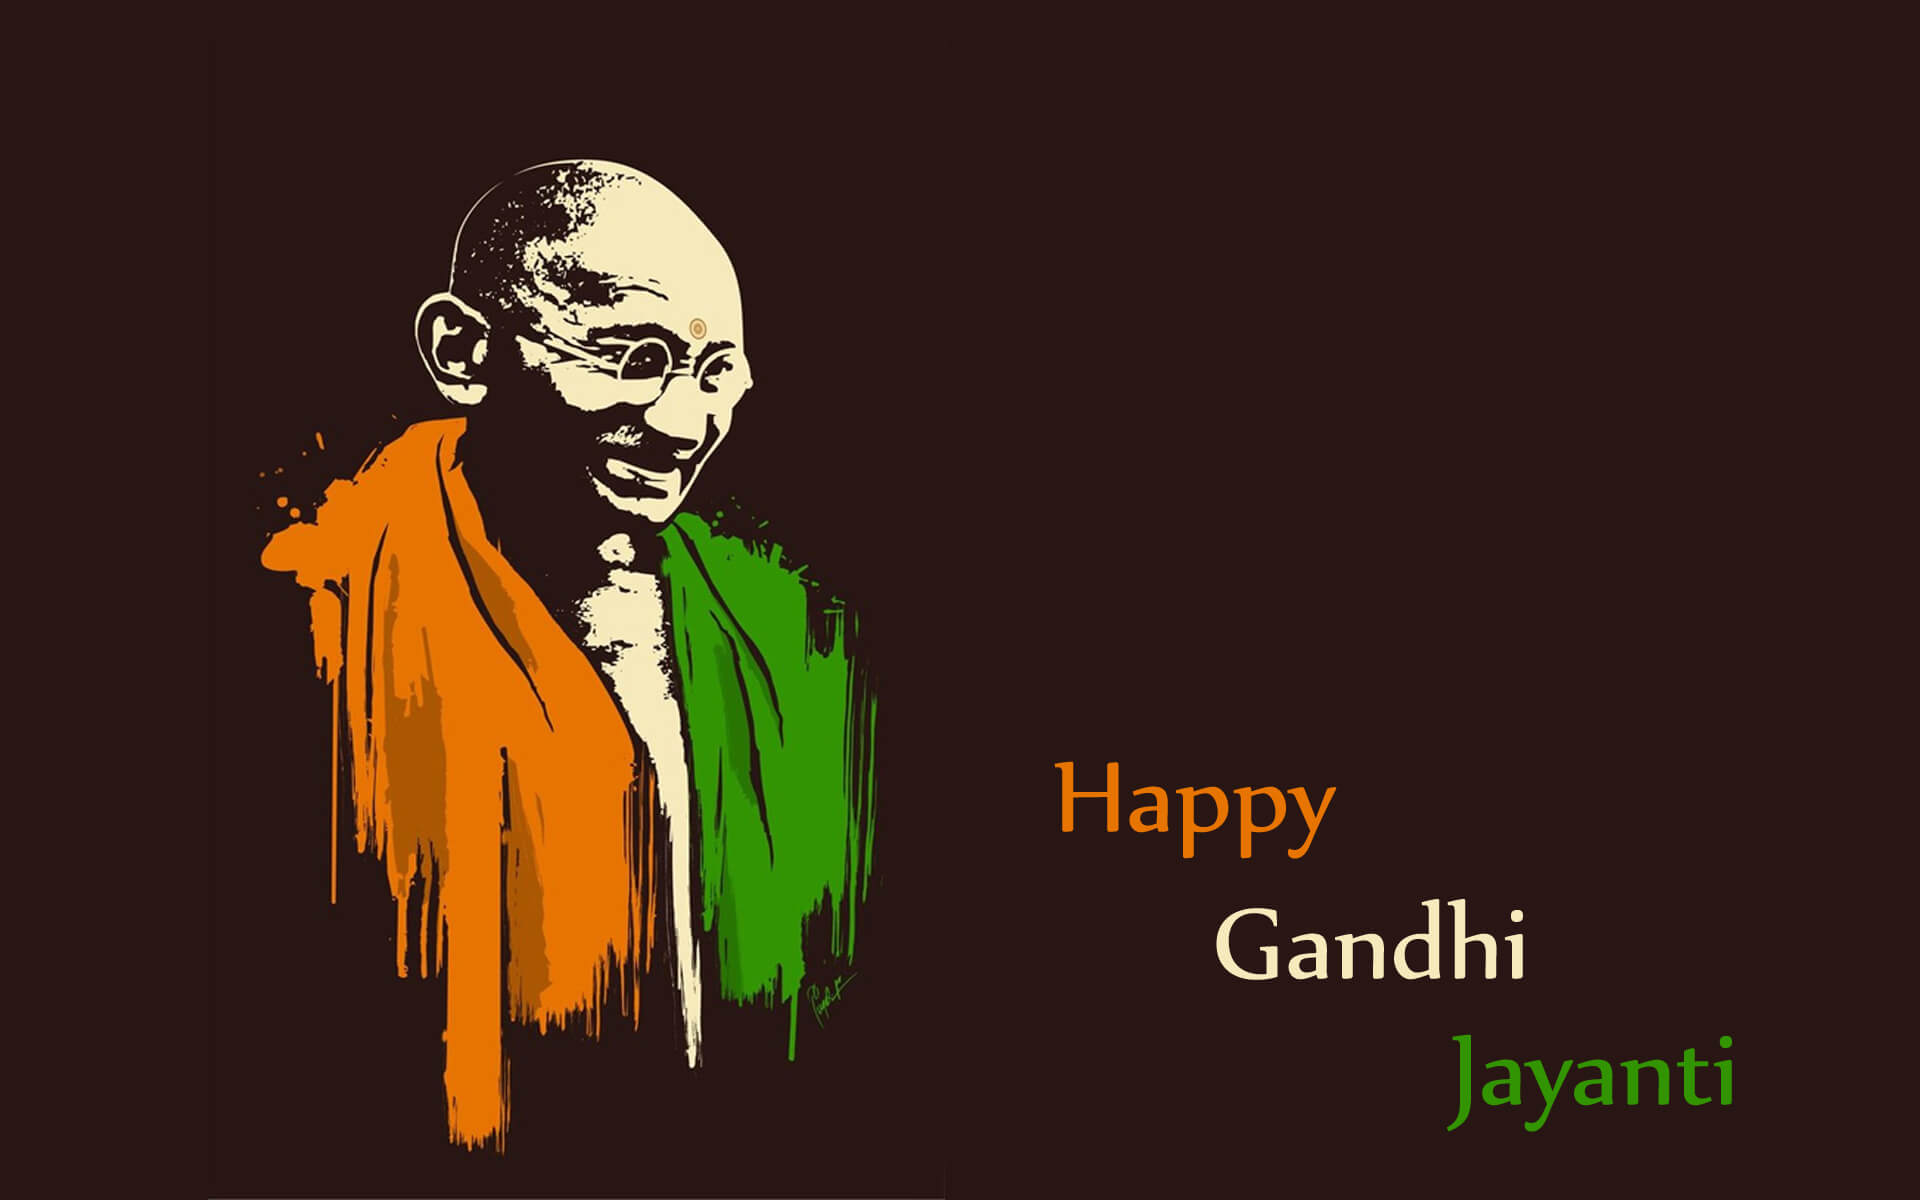 Happy Gandhi Jayanti 2 October Hd Wallpaper